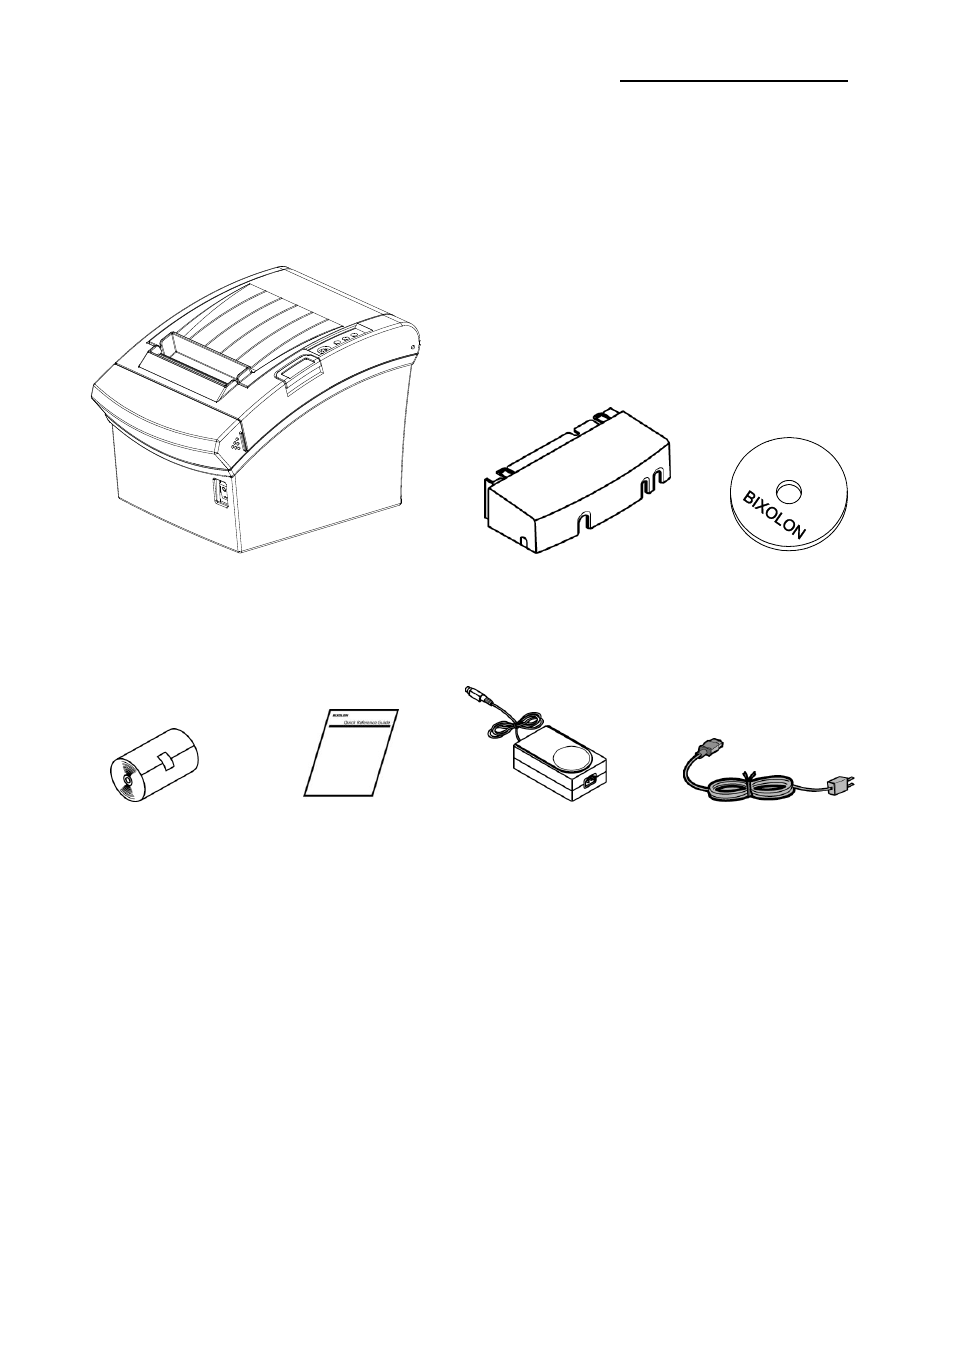 Installing printer and getting started, 1 unpacking